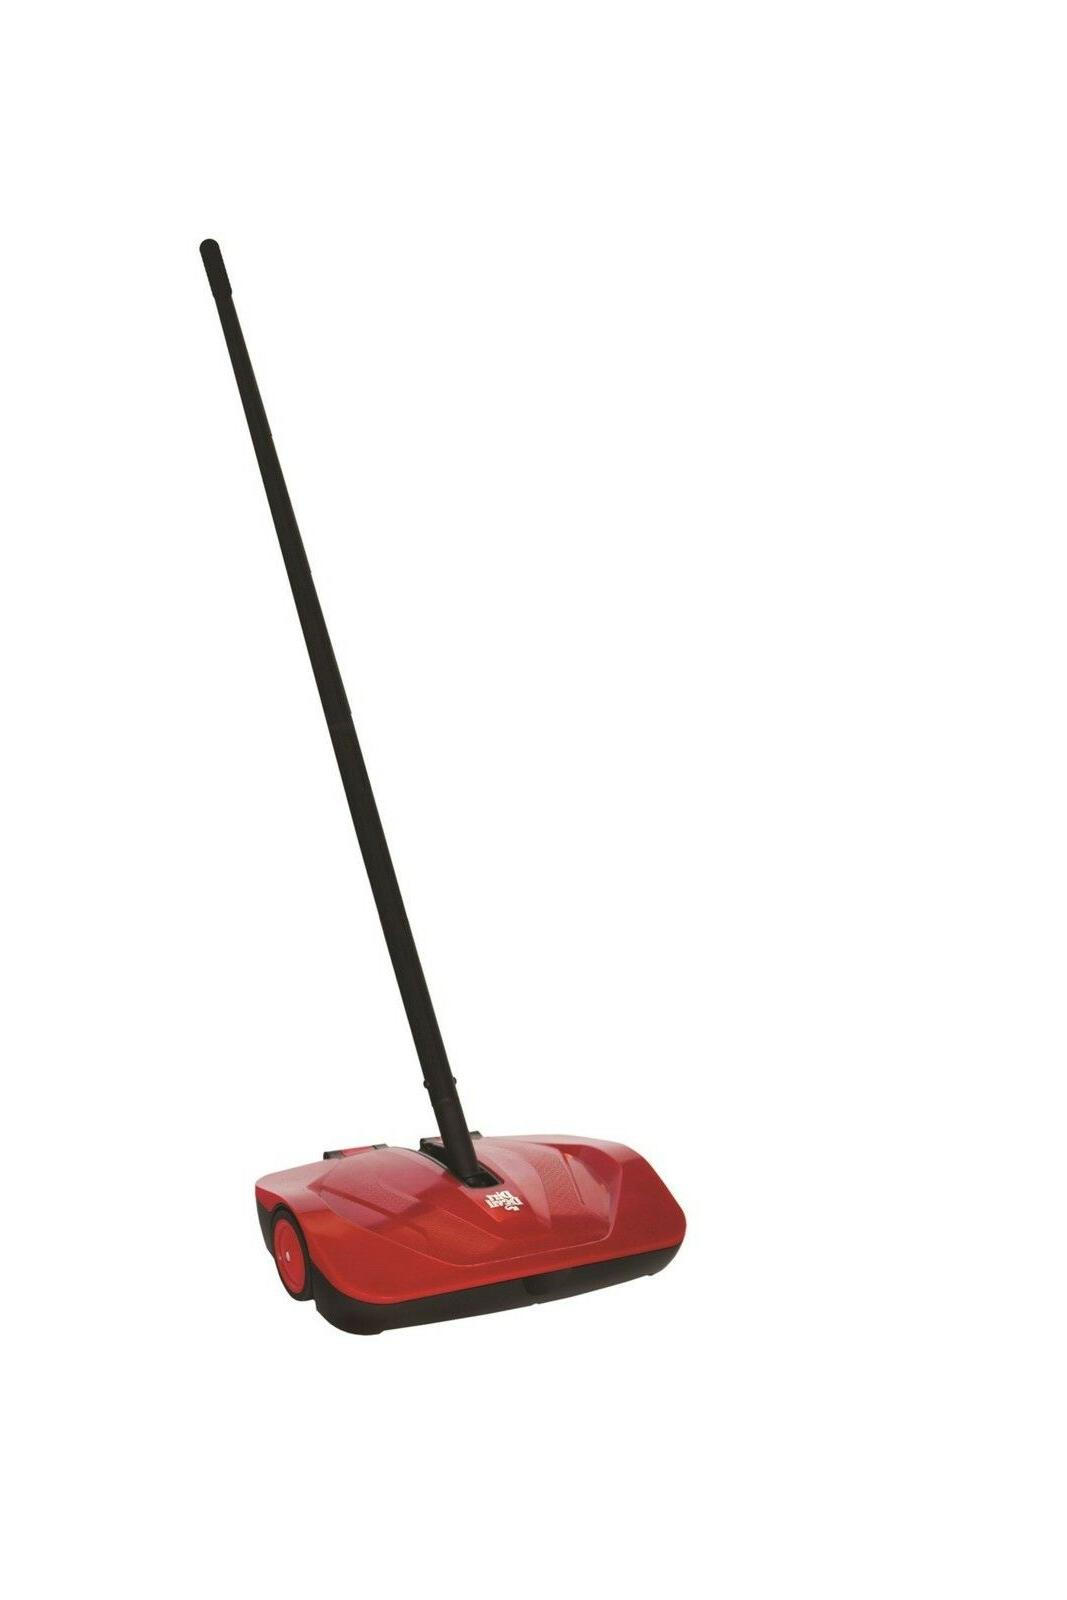 Dirt Devil Simpli-Sweep Manual Stick Vacuum, PD10010